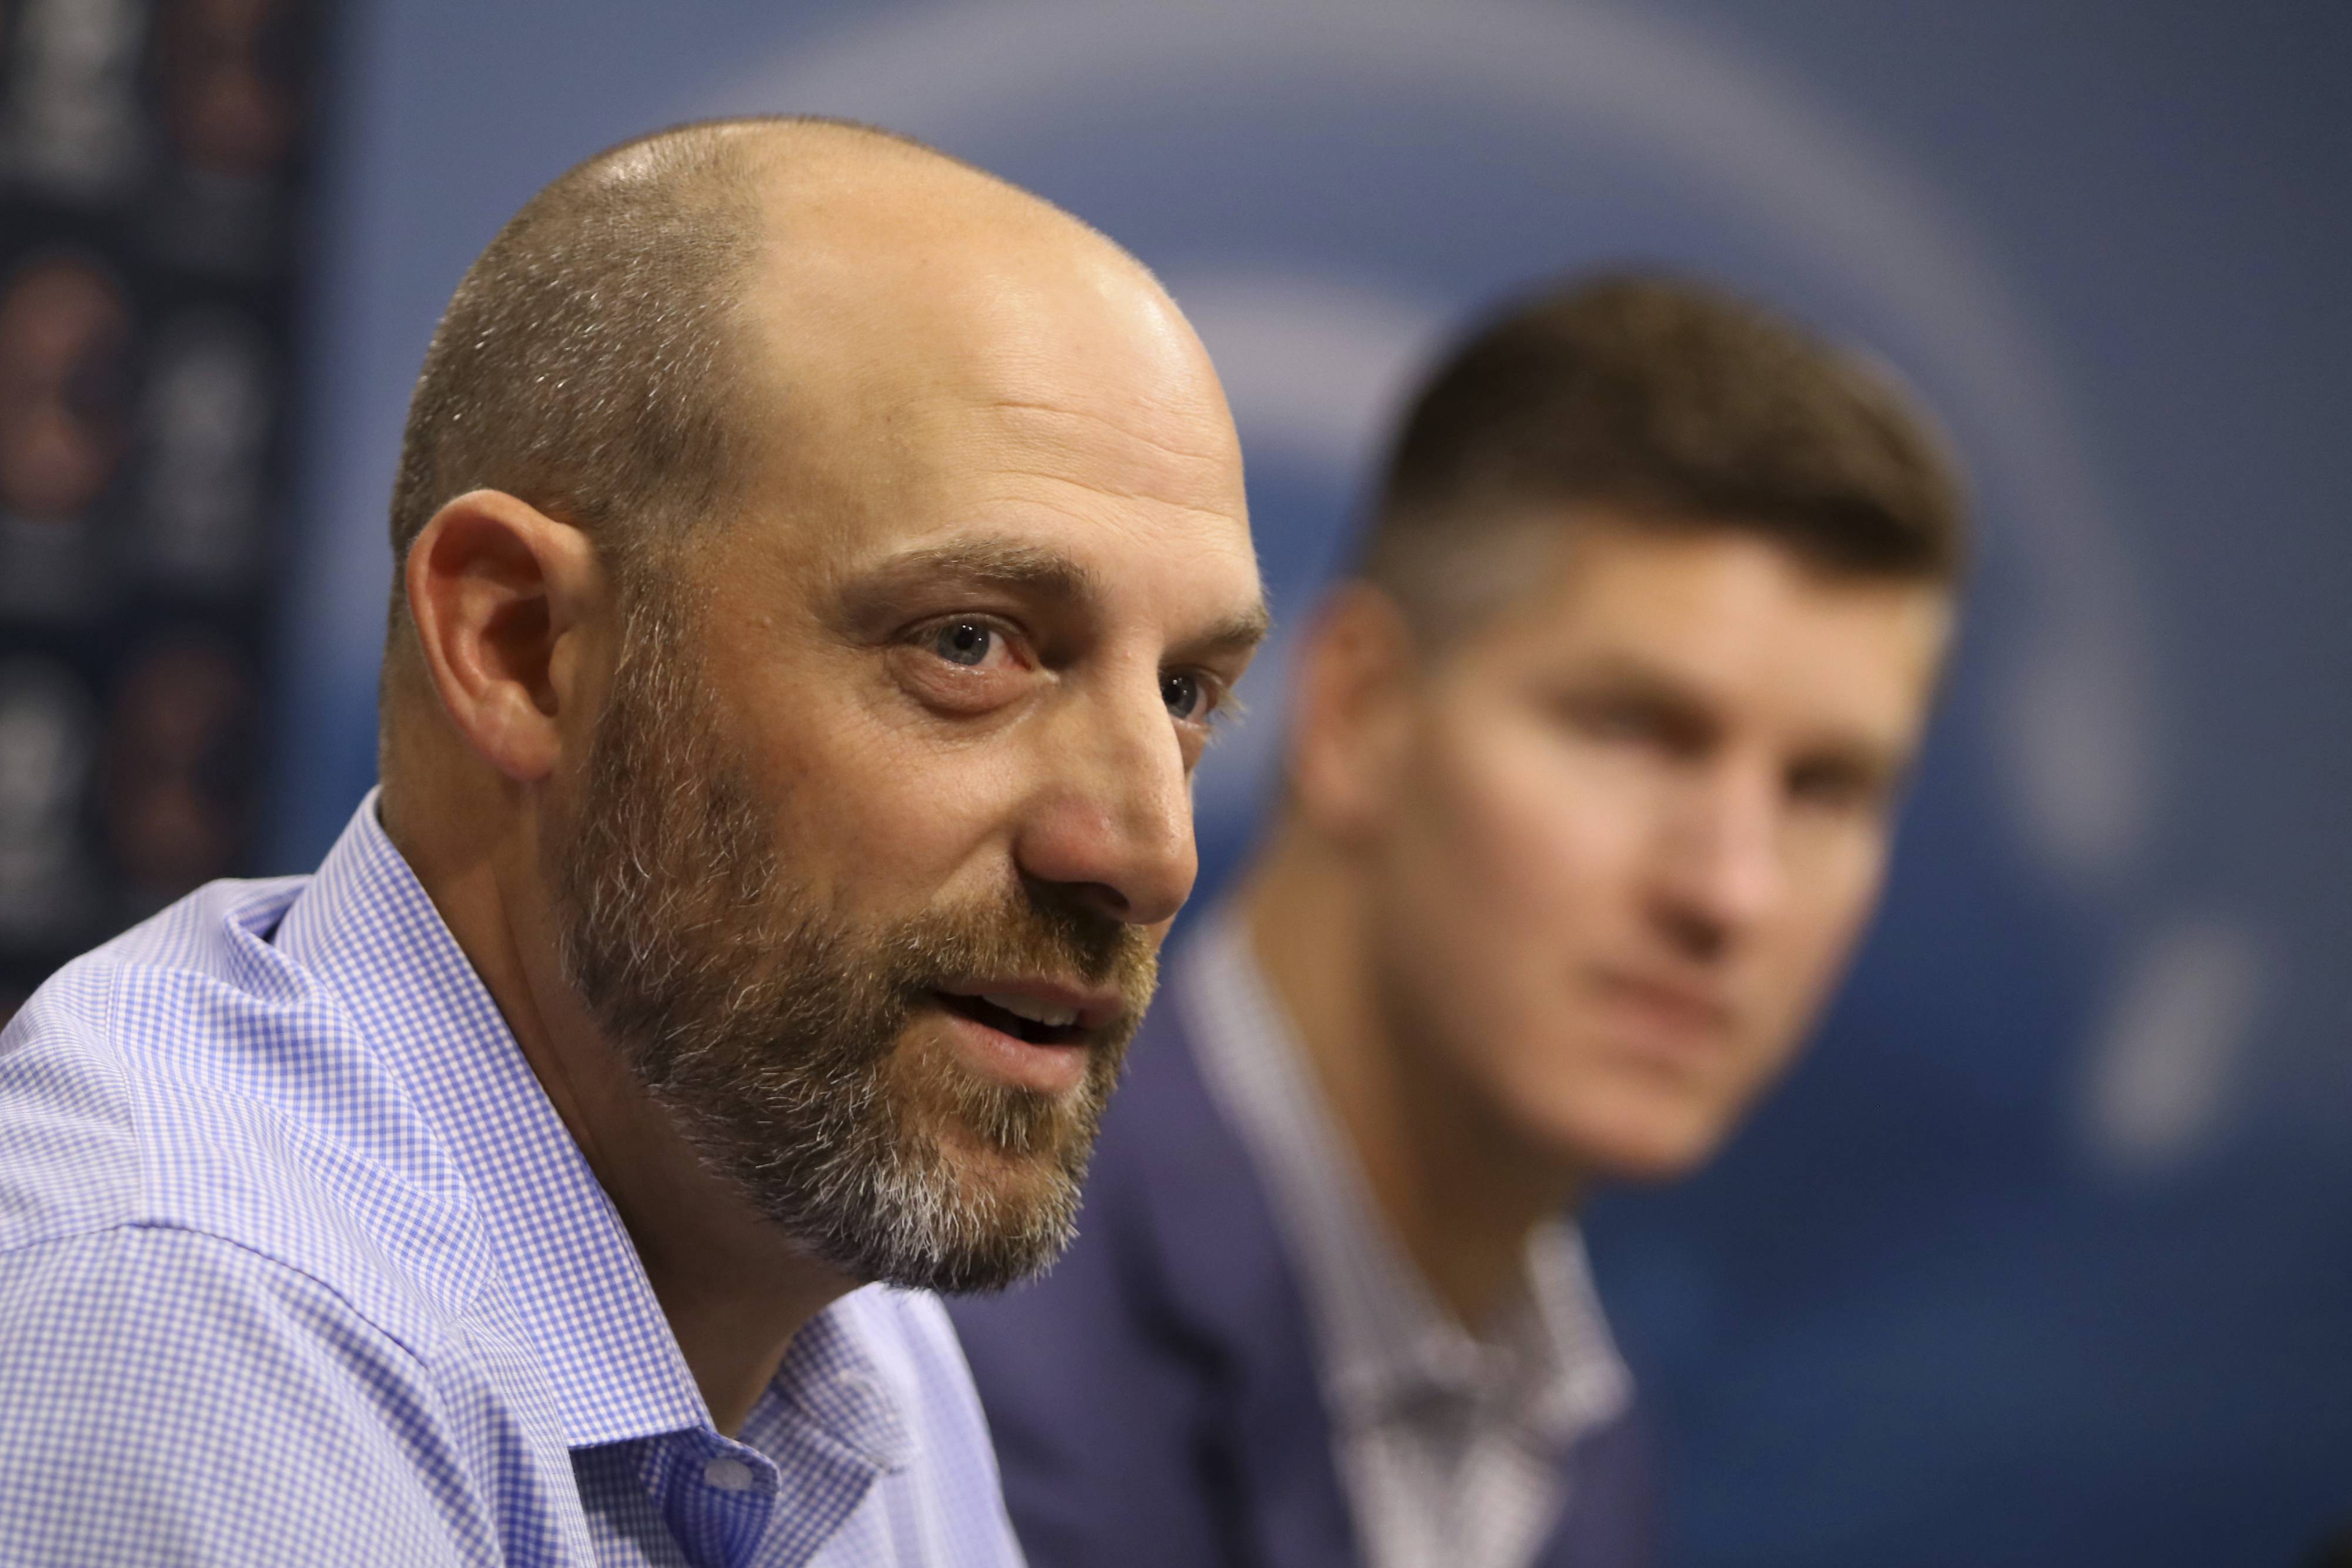 Chicago Bears head coach Matt Nagy, left, speaks to the media as general manager Ryan Pace looks on during an NFL football news conference Sunday, Sept. 2, 2018, at Halas Hall in Lake Forest, Ill. (Tim Boyle/Chicago Sun-Times via AP)